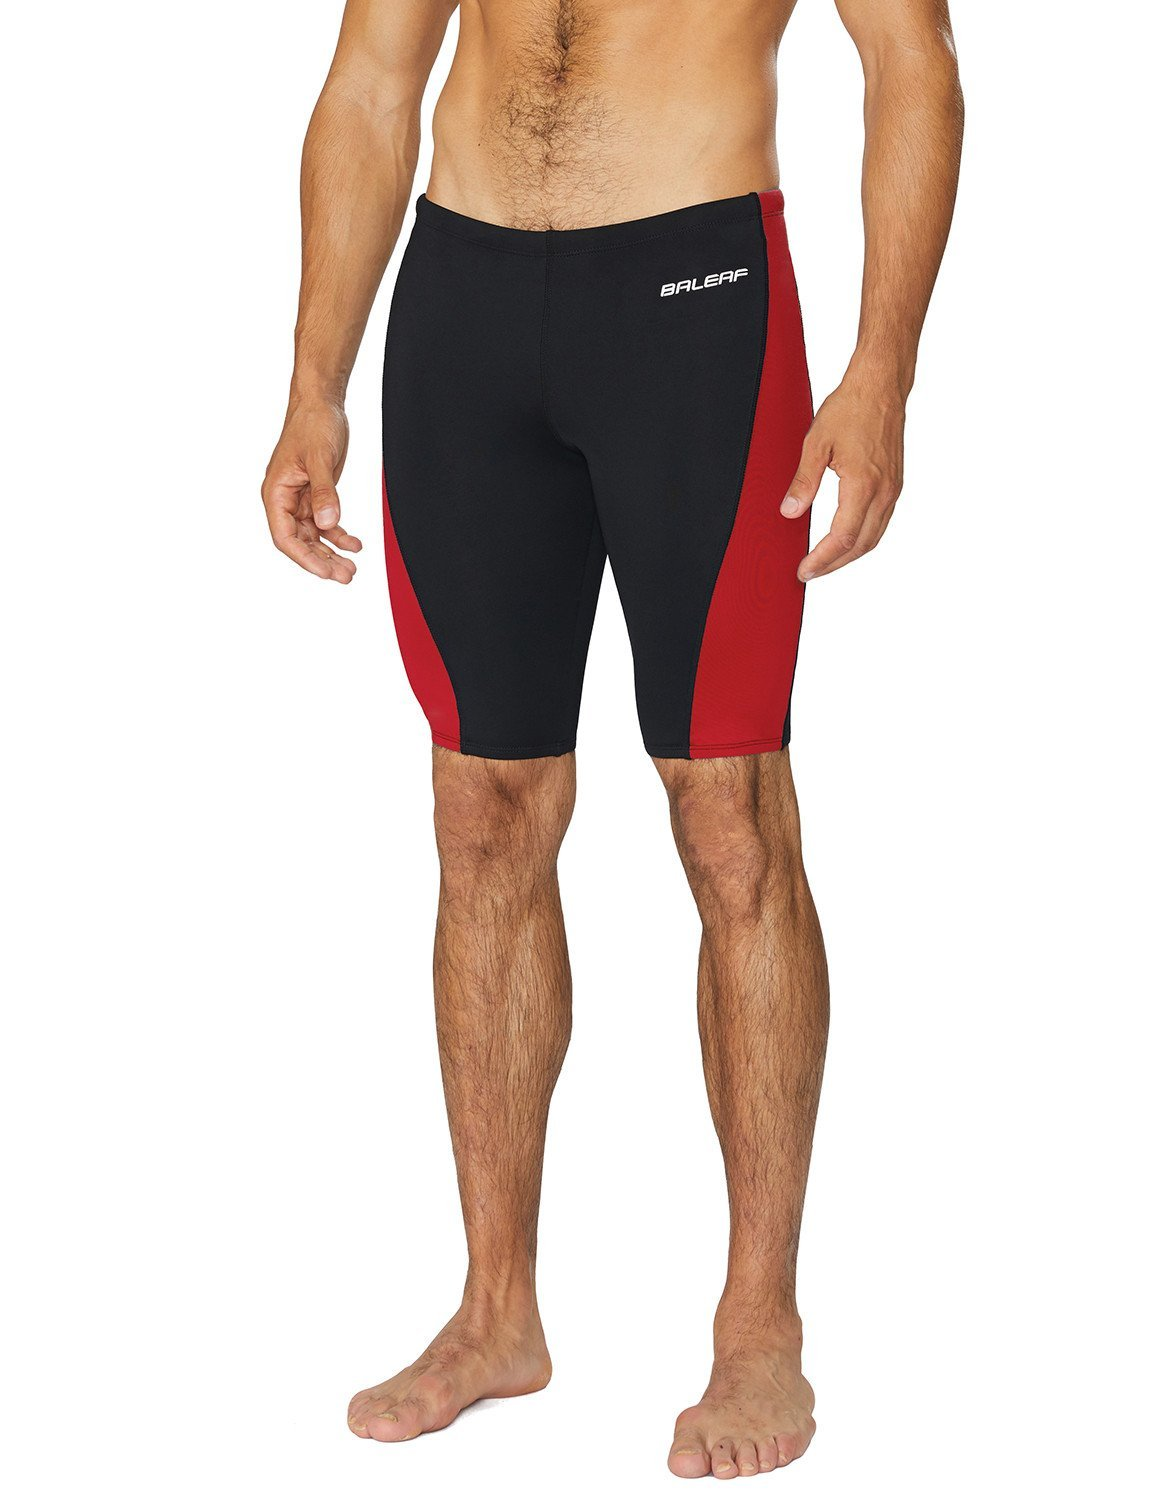 Baleaf Men's Durable Training Polyester Jammer Swimsuit Black/Red Size 32 by Baleaf